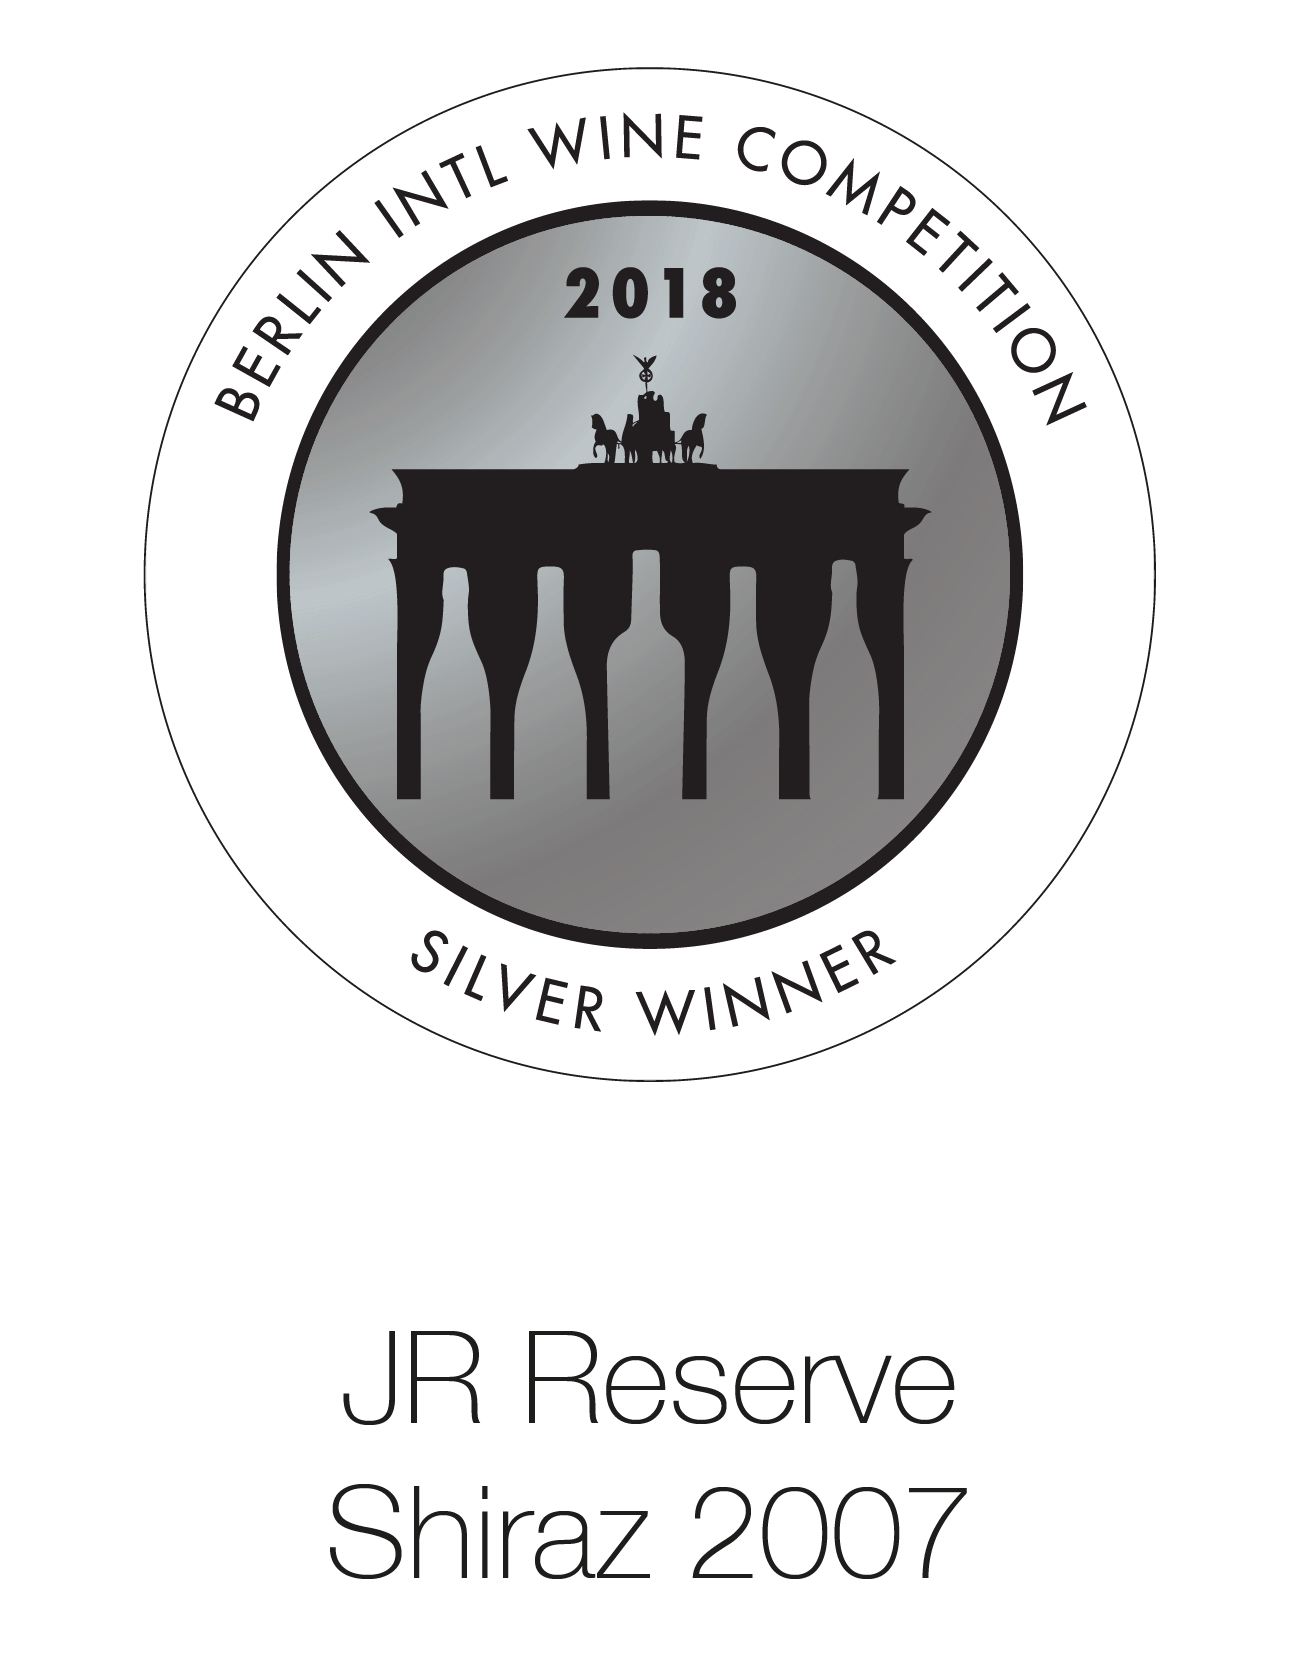 JR Reserve Shiraz 2007 - Berlin International Wine Competition 2018